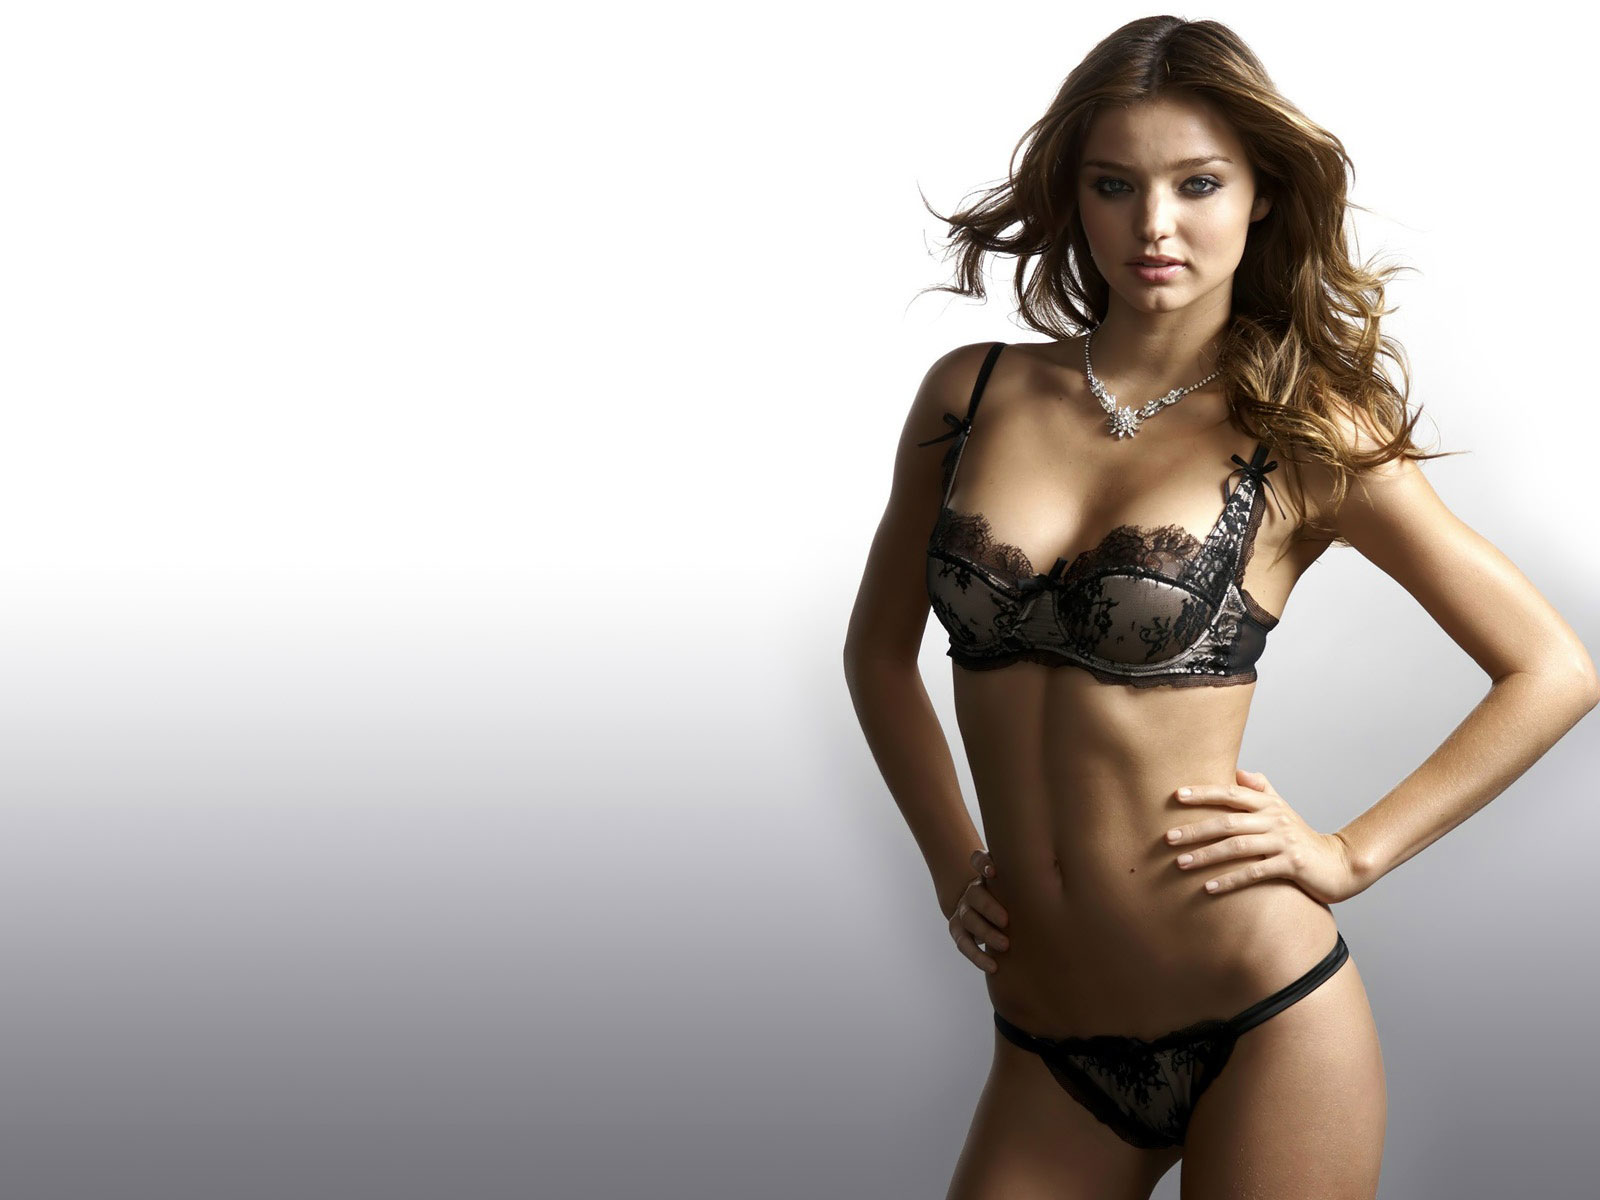 Best top desktop hot girls wallpapers hot girls wallpaper lingerie bikini picture photos